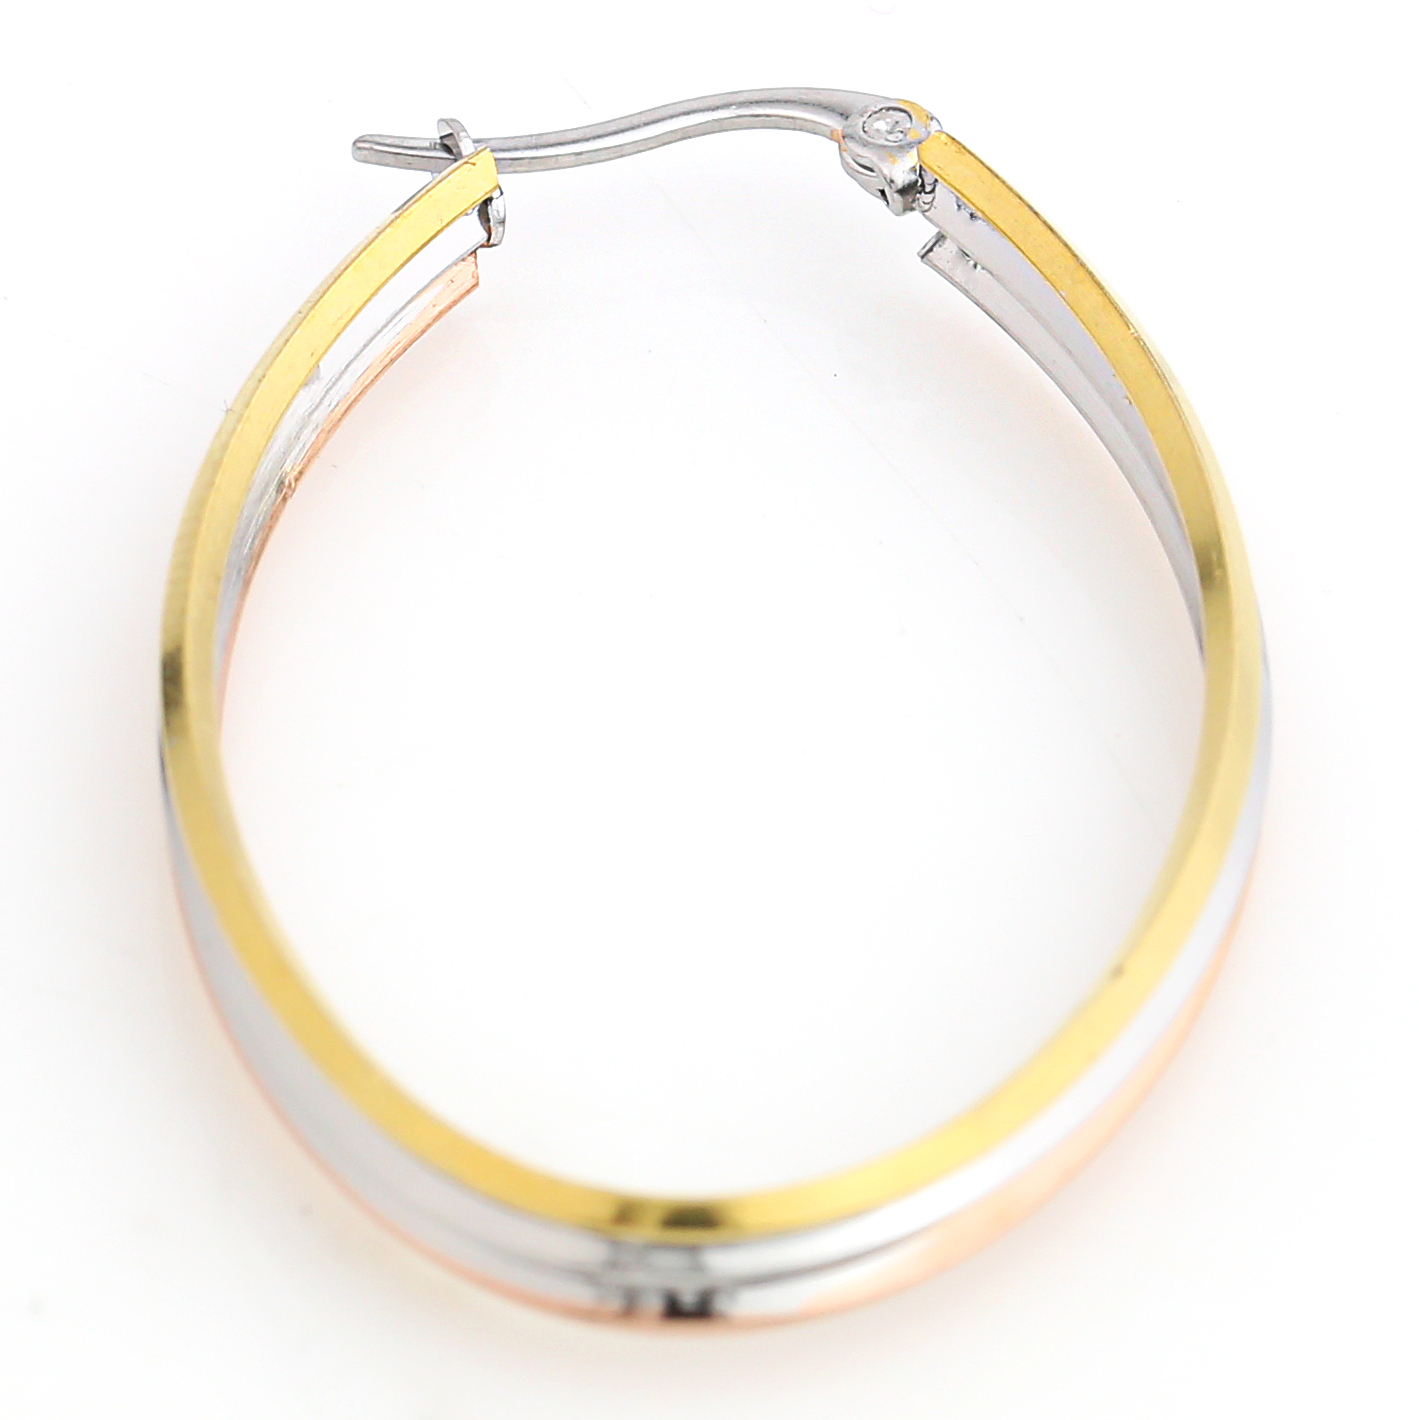 Polished Oval Tri-Color Silver, Gold & Rose Tone Hoop Earrings- United Elegance